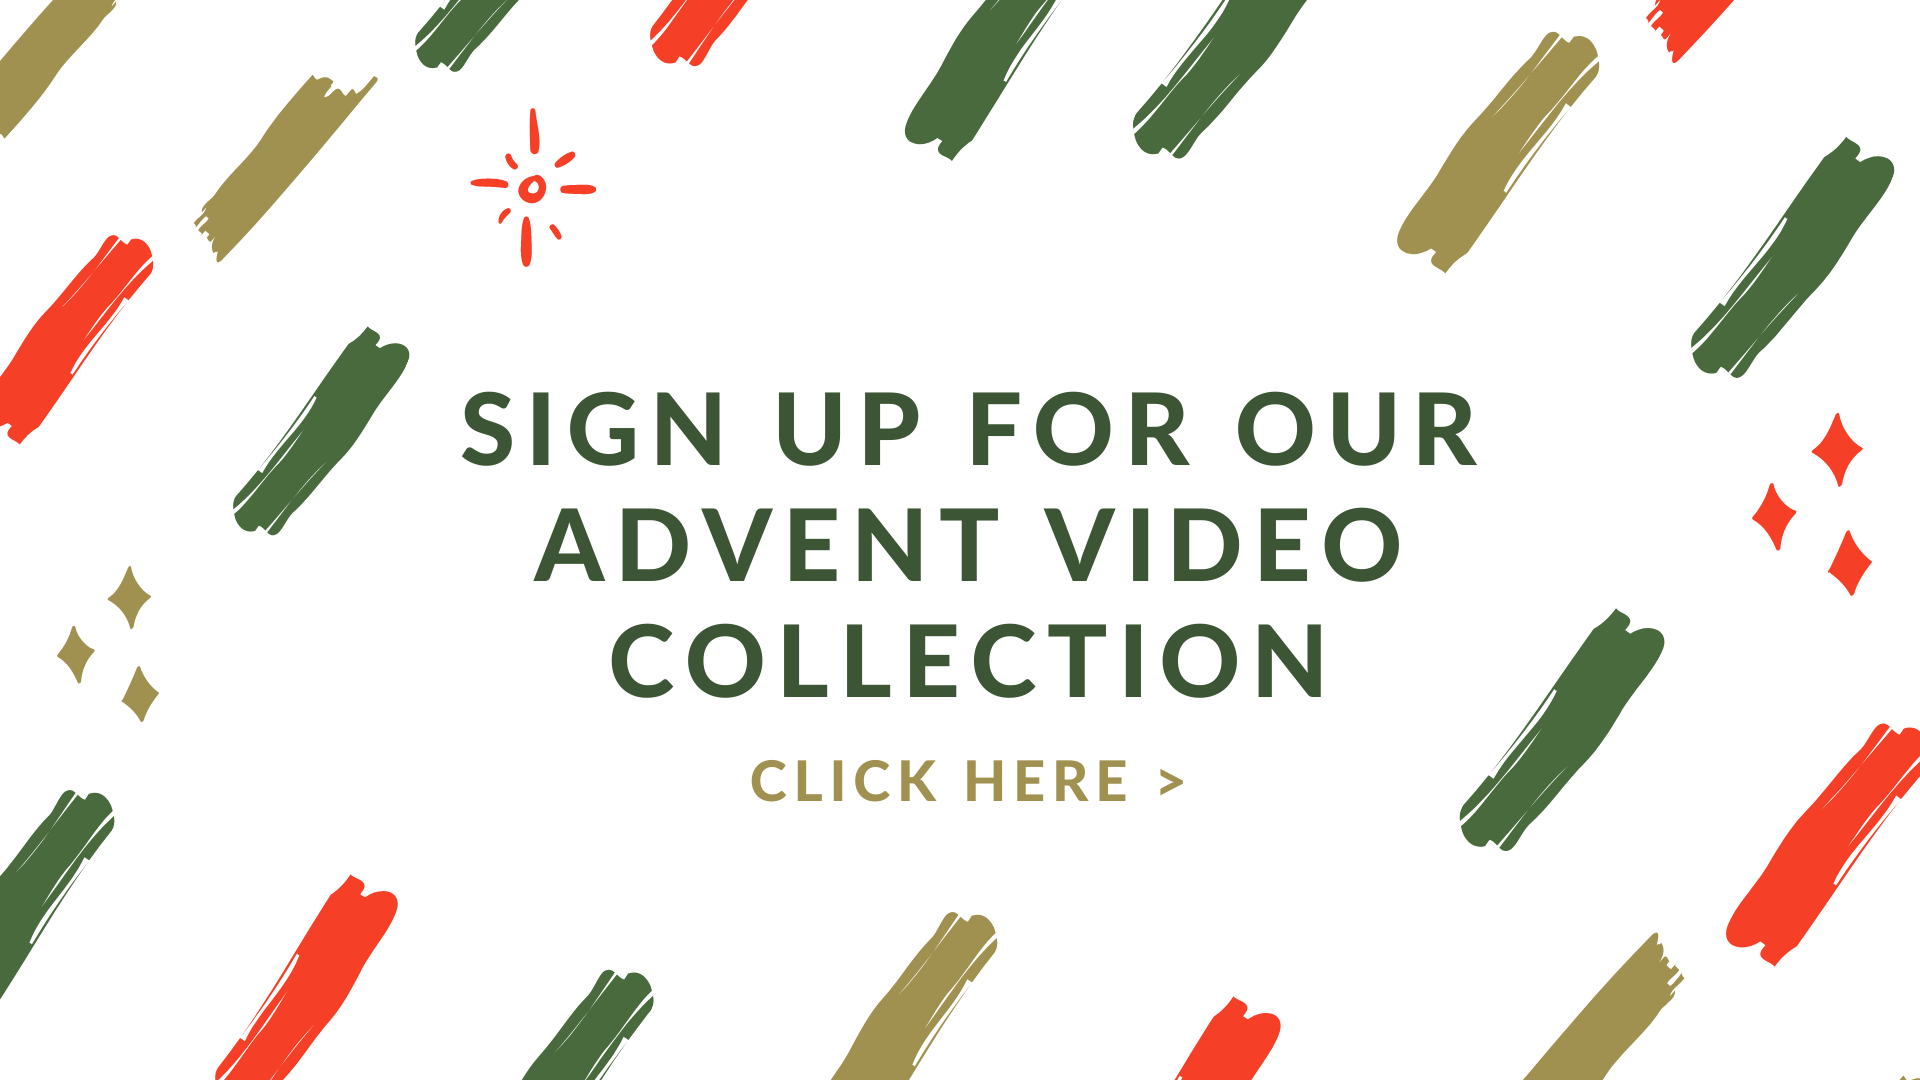 Journey through advent with us